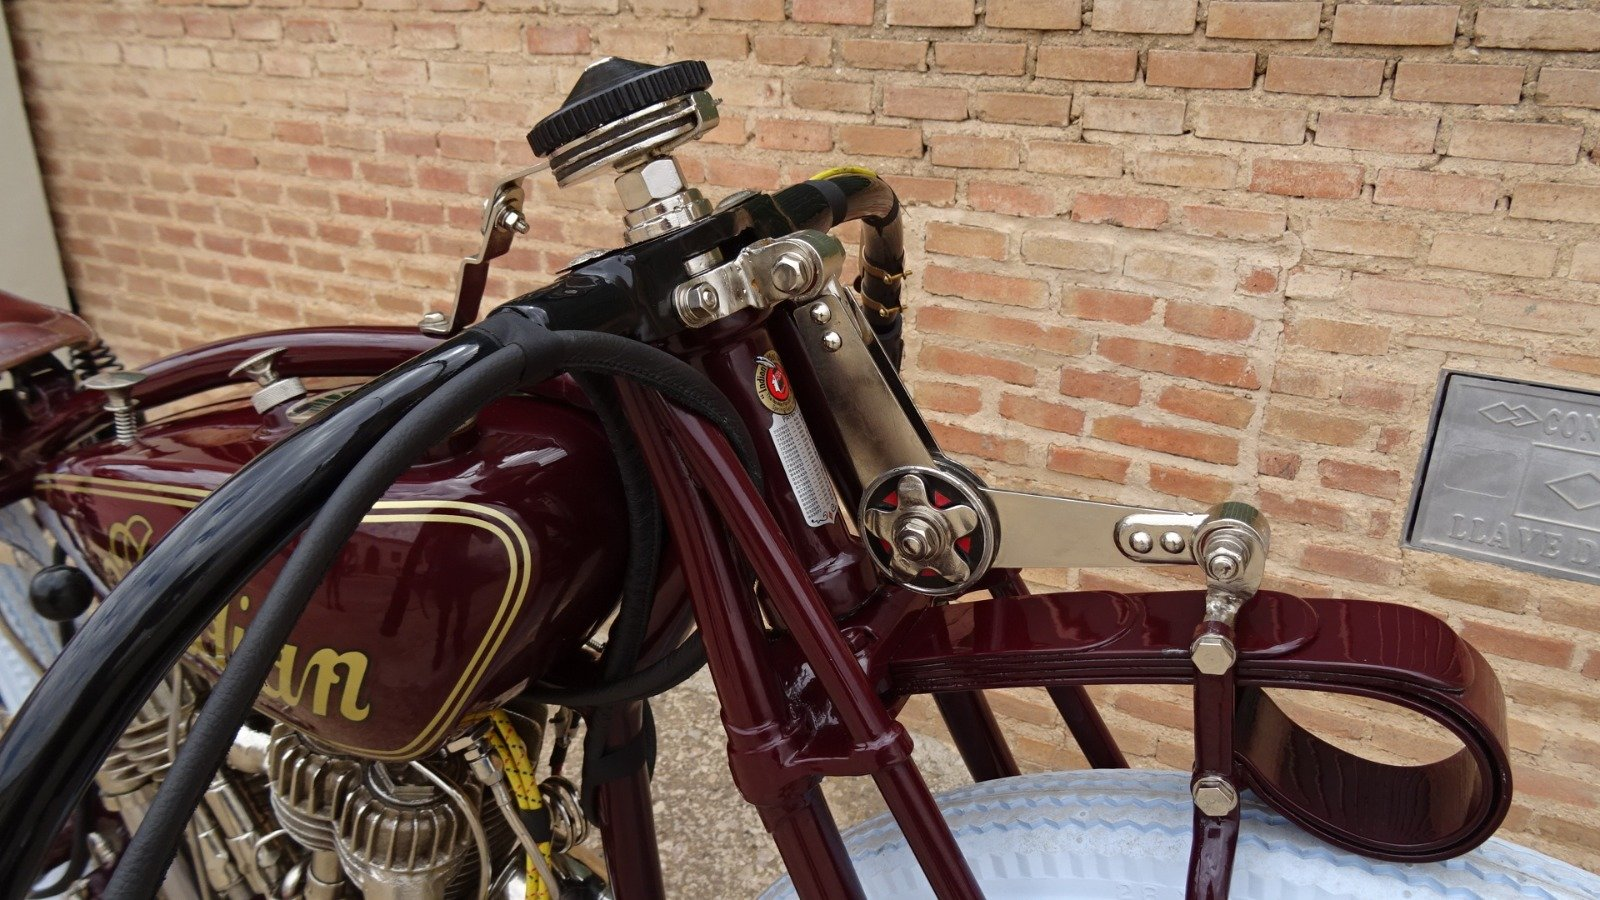 1920 INDIAN POWERPLUS TT RACER 1000cc For Sale (picture 6 of 6)